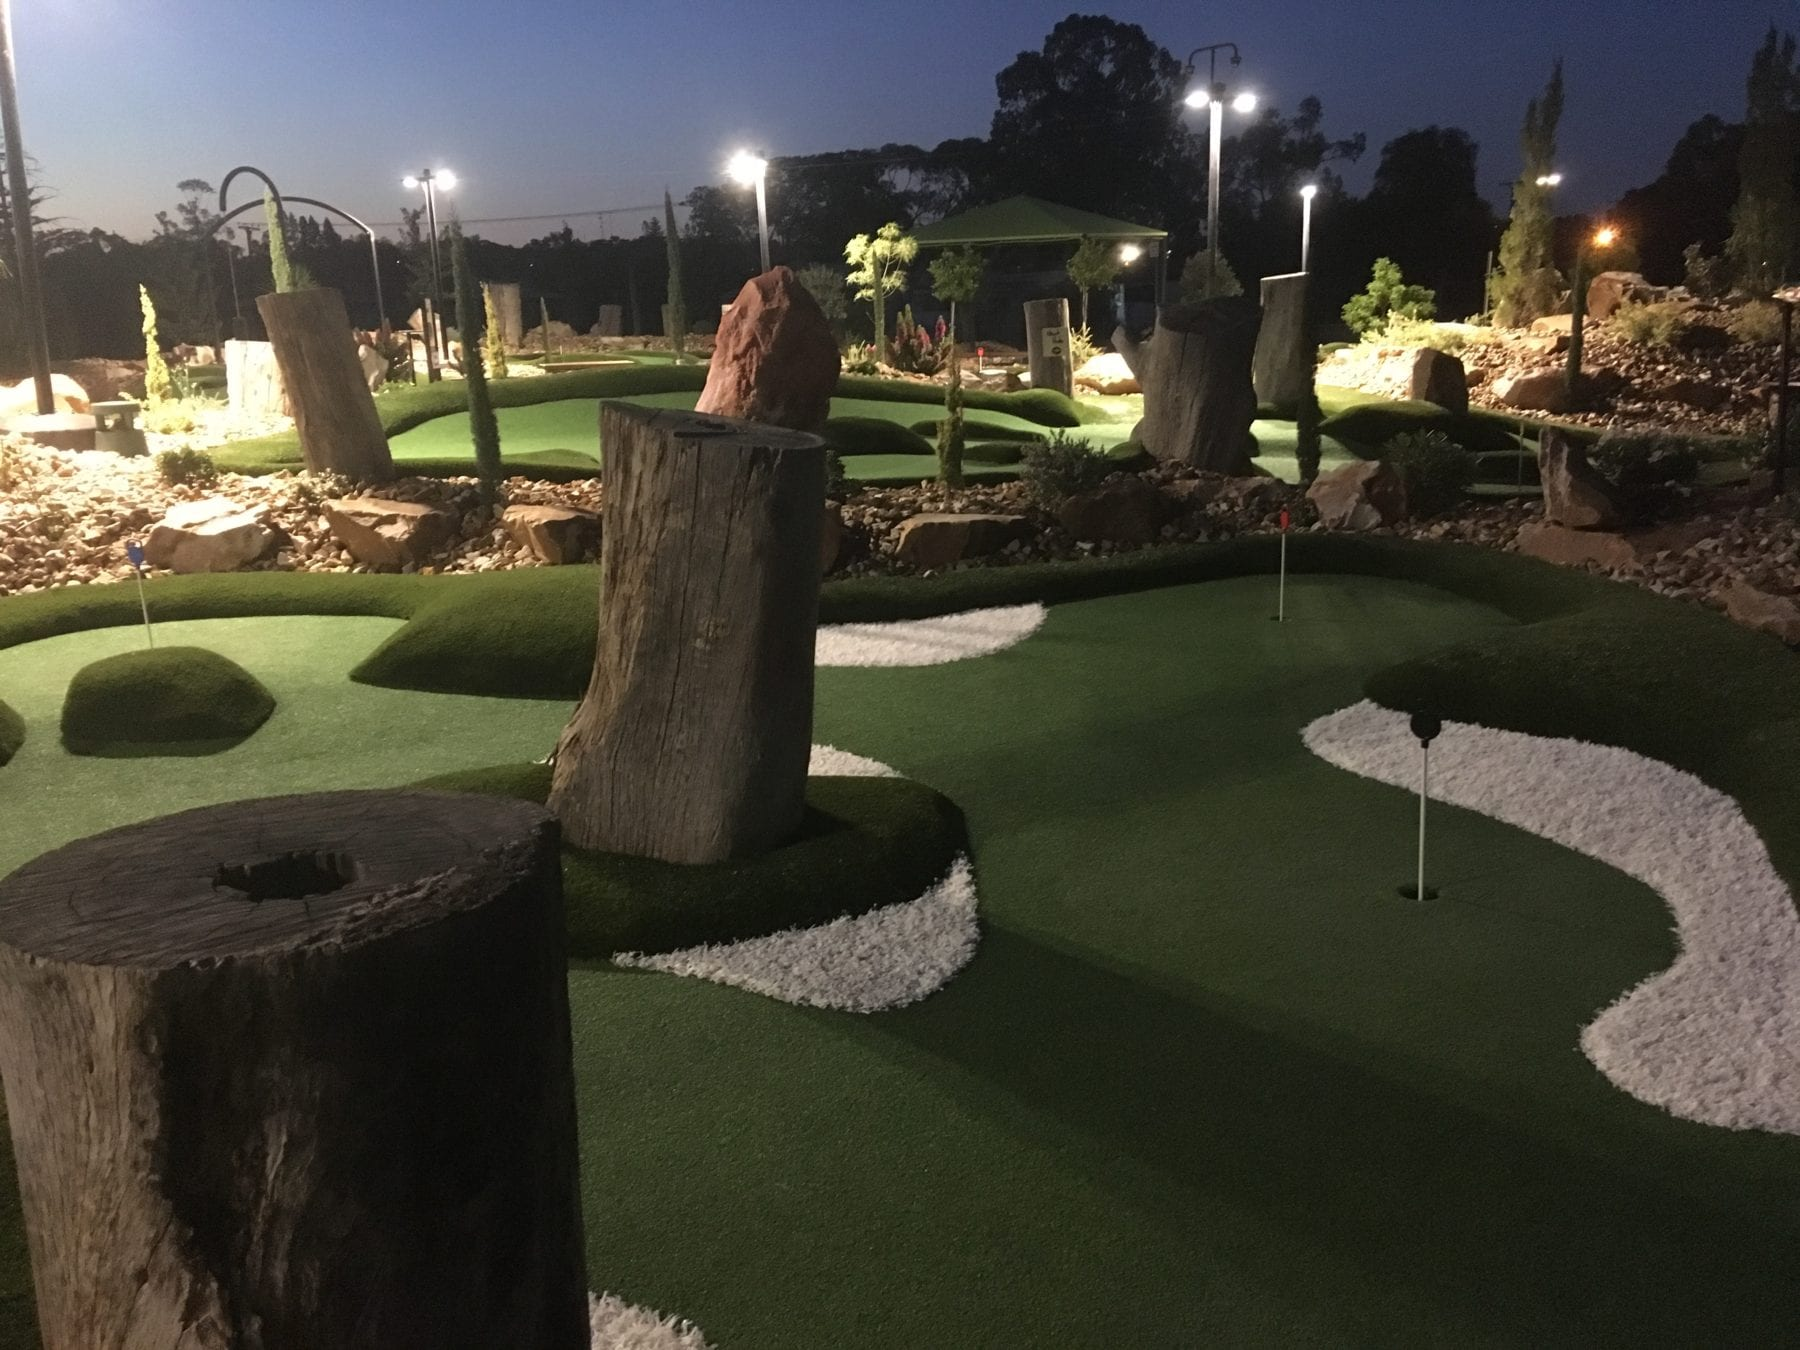 Mini Golf at its best!